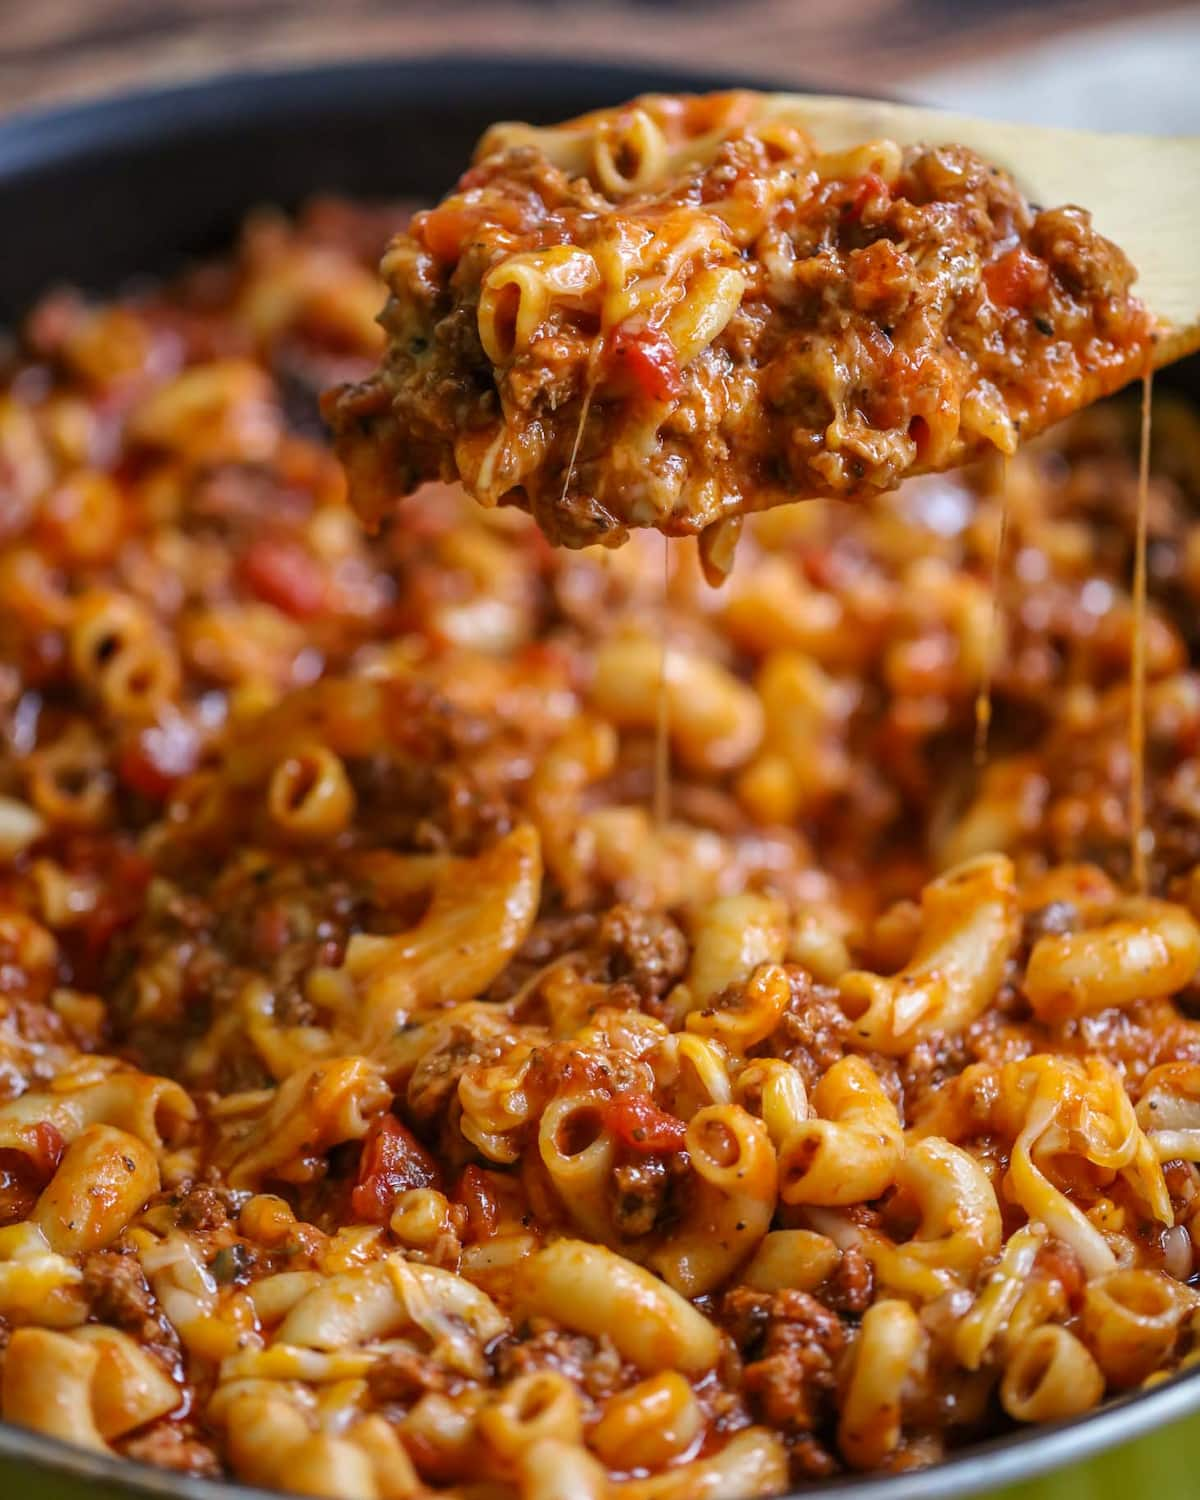 10 delicious pasta and mince recipes in South Africa mince pasta pasta and mince recipes mince pasta bake mince pasta recipe mince and pasta recipe